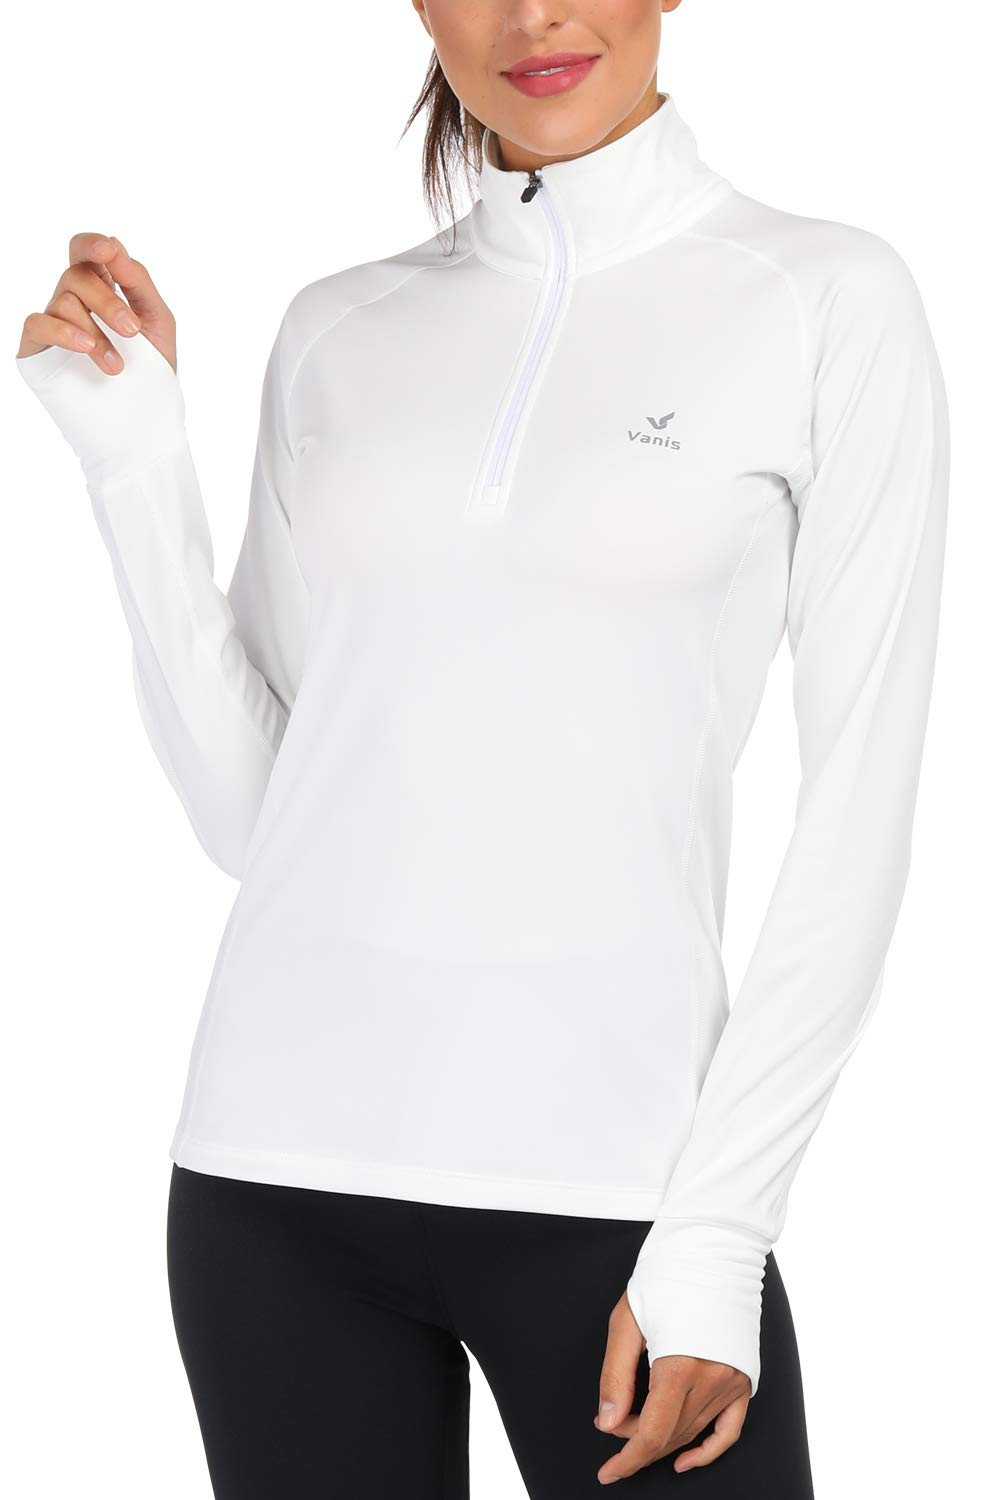 Women's Yoga Jacket 1/2 Zip Pullover Thermal Fleece Athletic Long Sleeve Running Top with Thumb Holes (White, X-Large) by Vanis